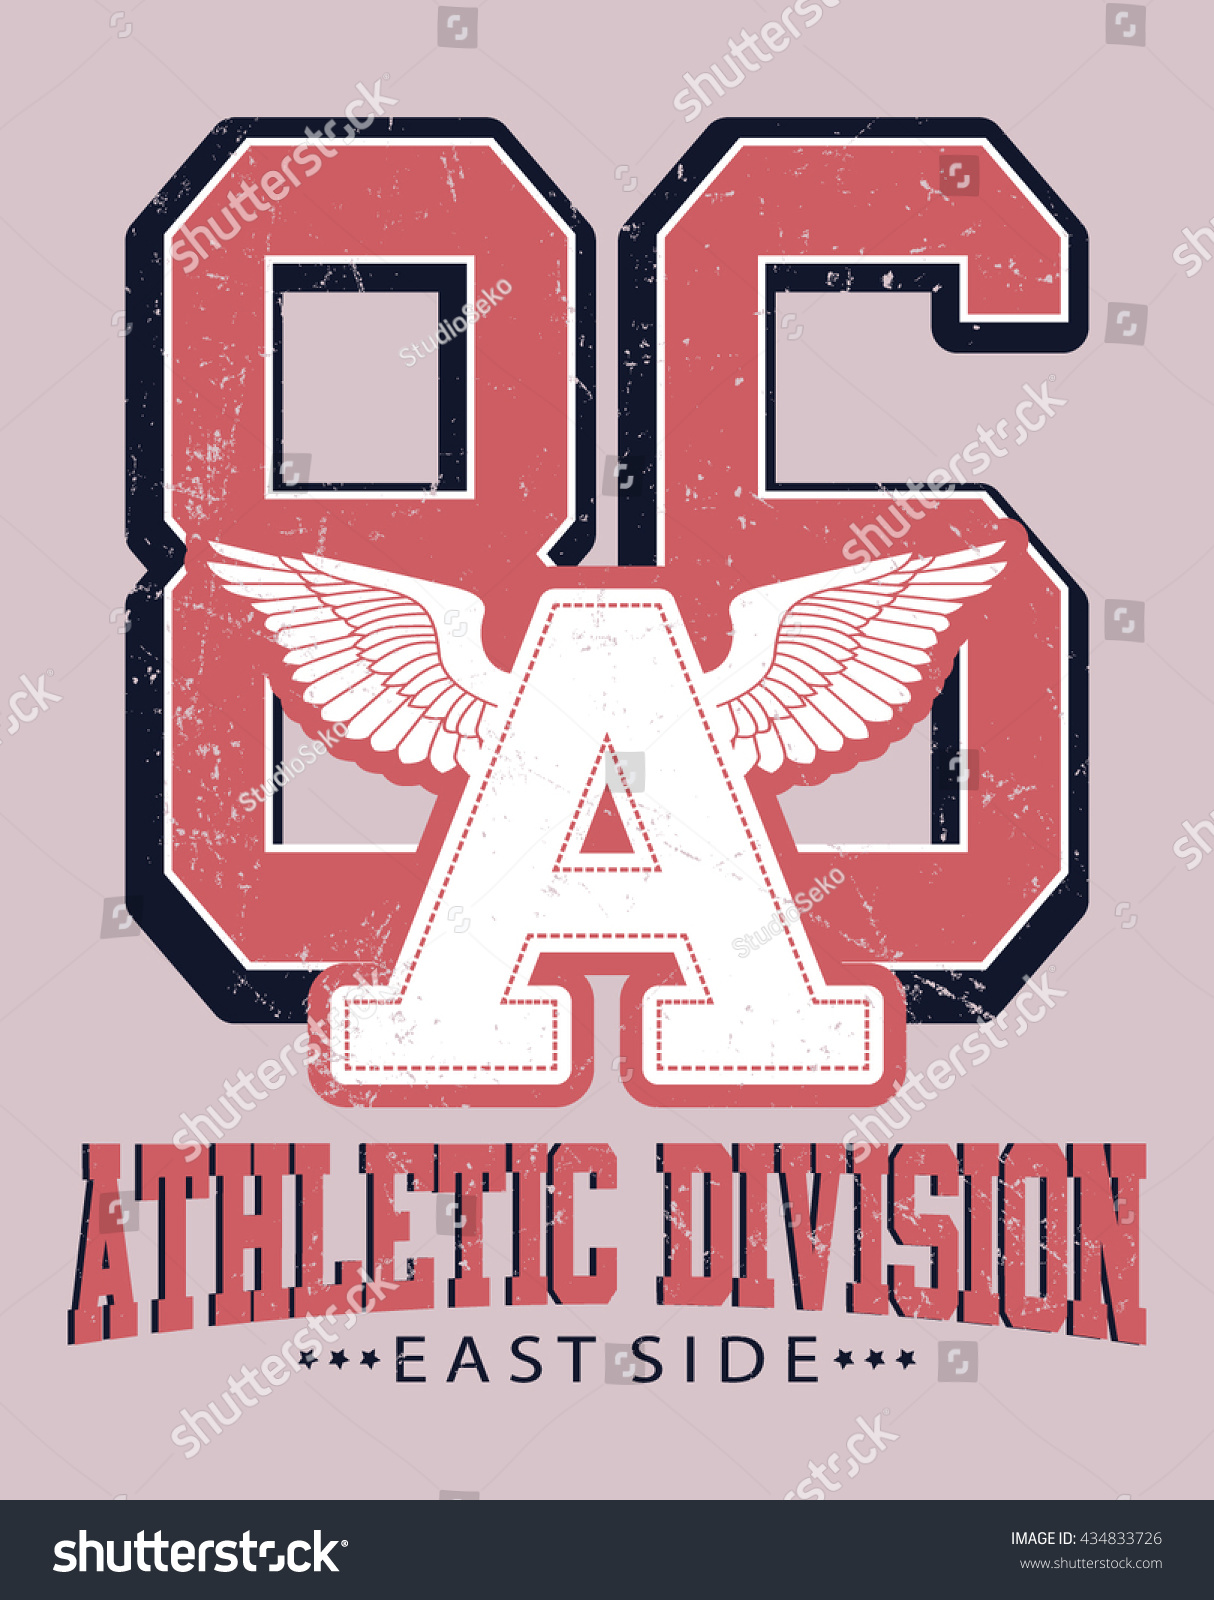 Royalty Free Athletic Division East Side Varsity 434833726 Stock